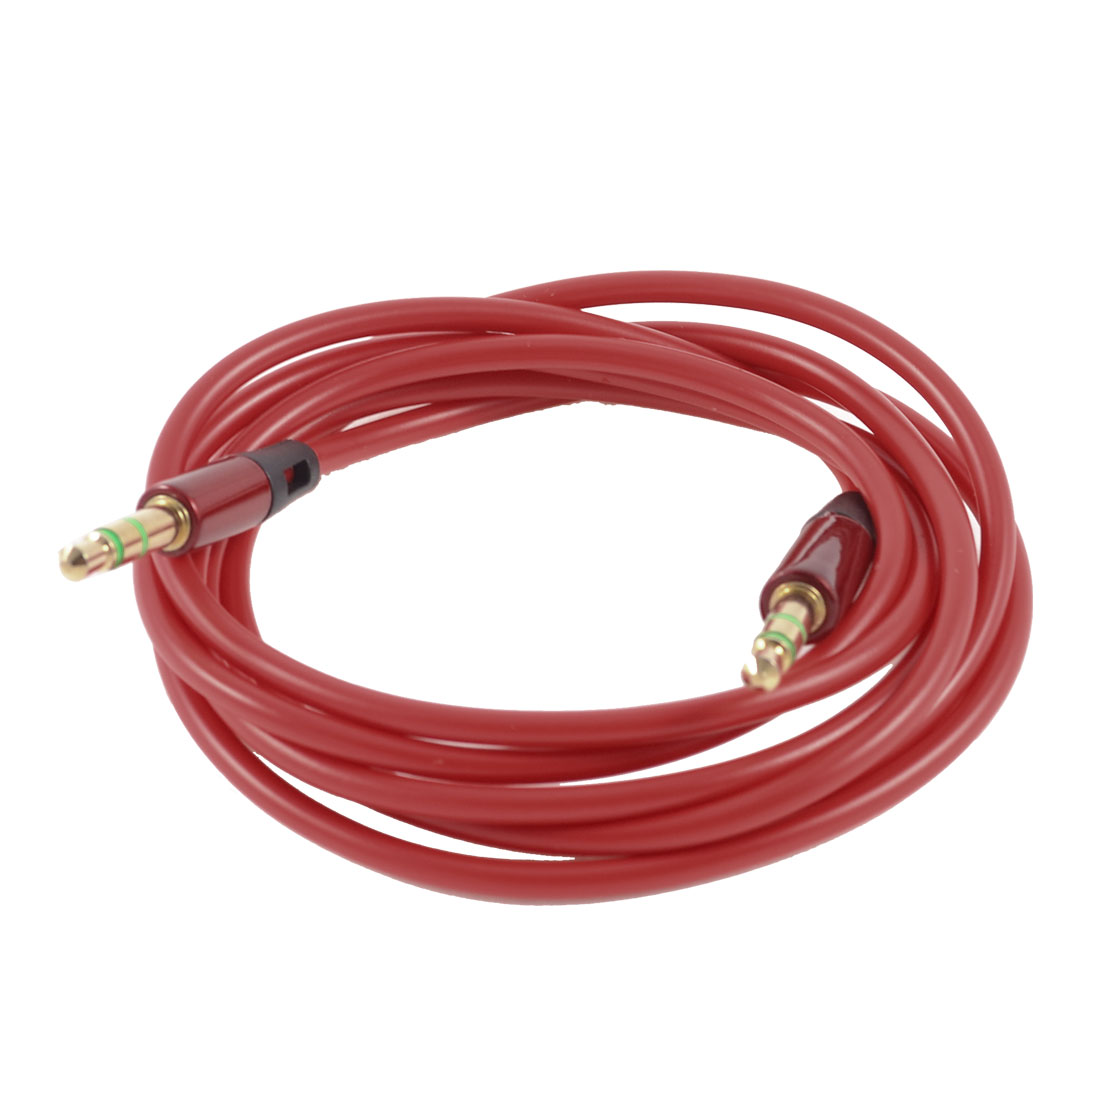 125cm Long 3.5mm Male to 3.5mm Male Plug Audio Round Extension Cable Red